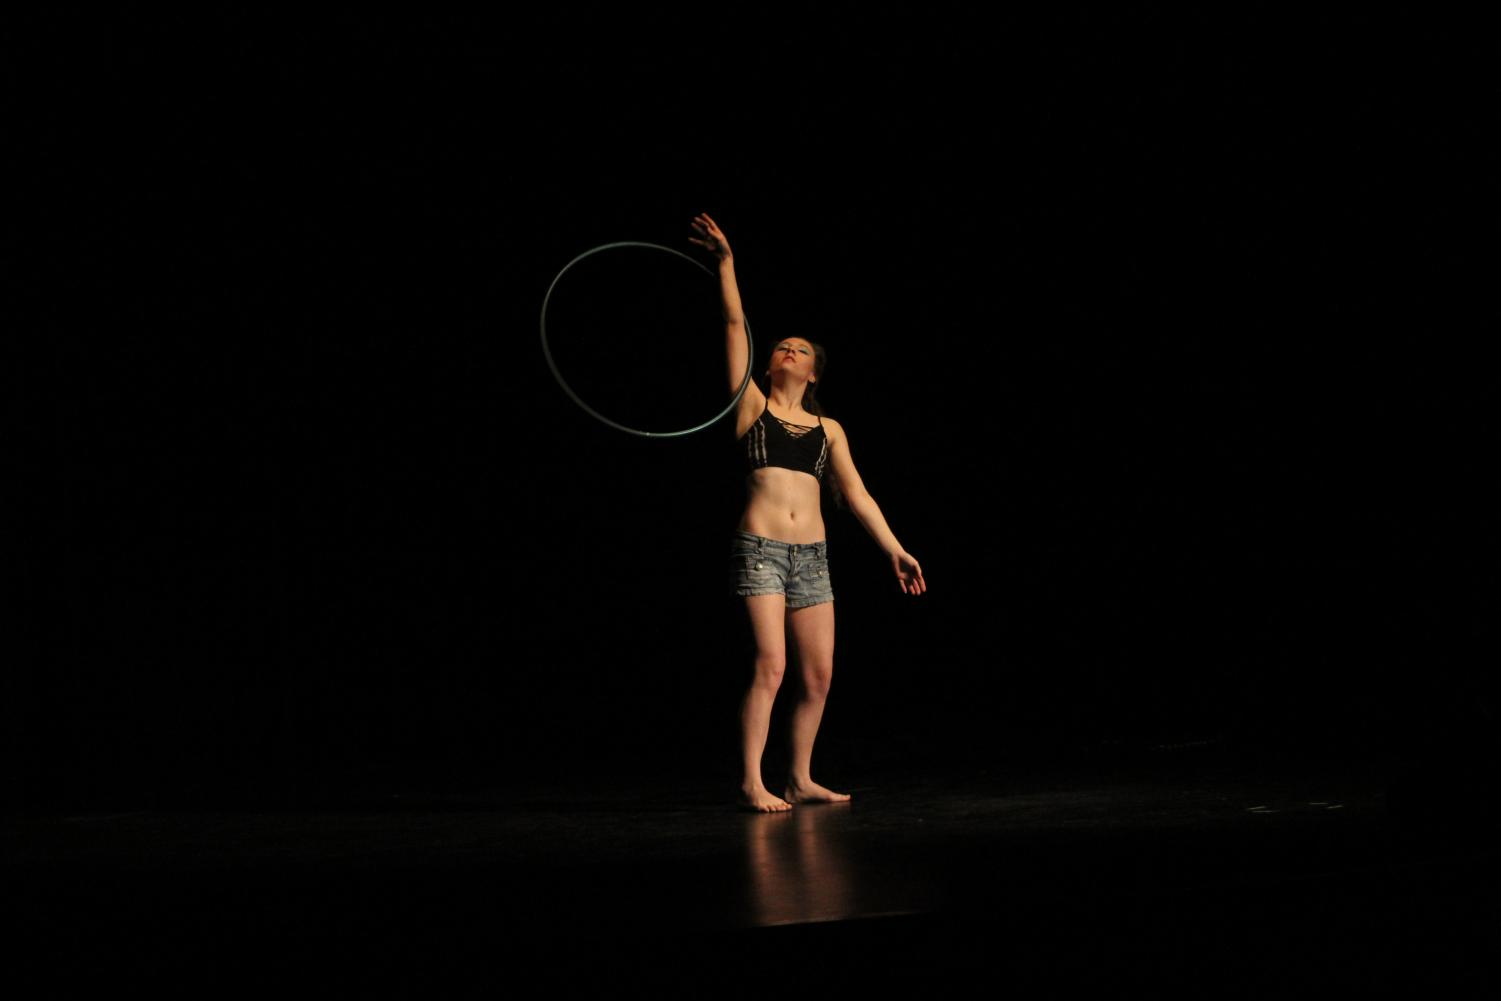 Senior Hanna Deckert shows off her talent by performing a hula-hoop dance.